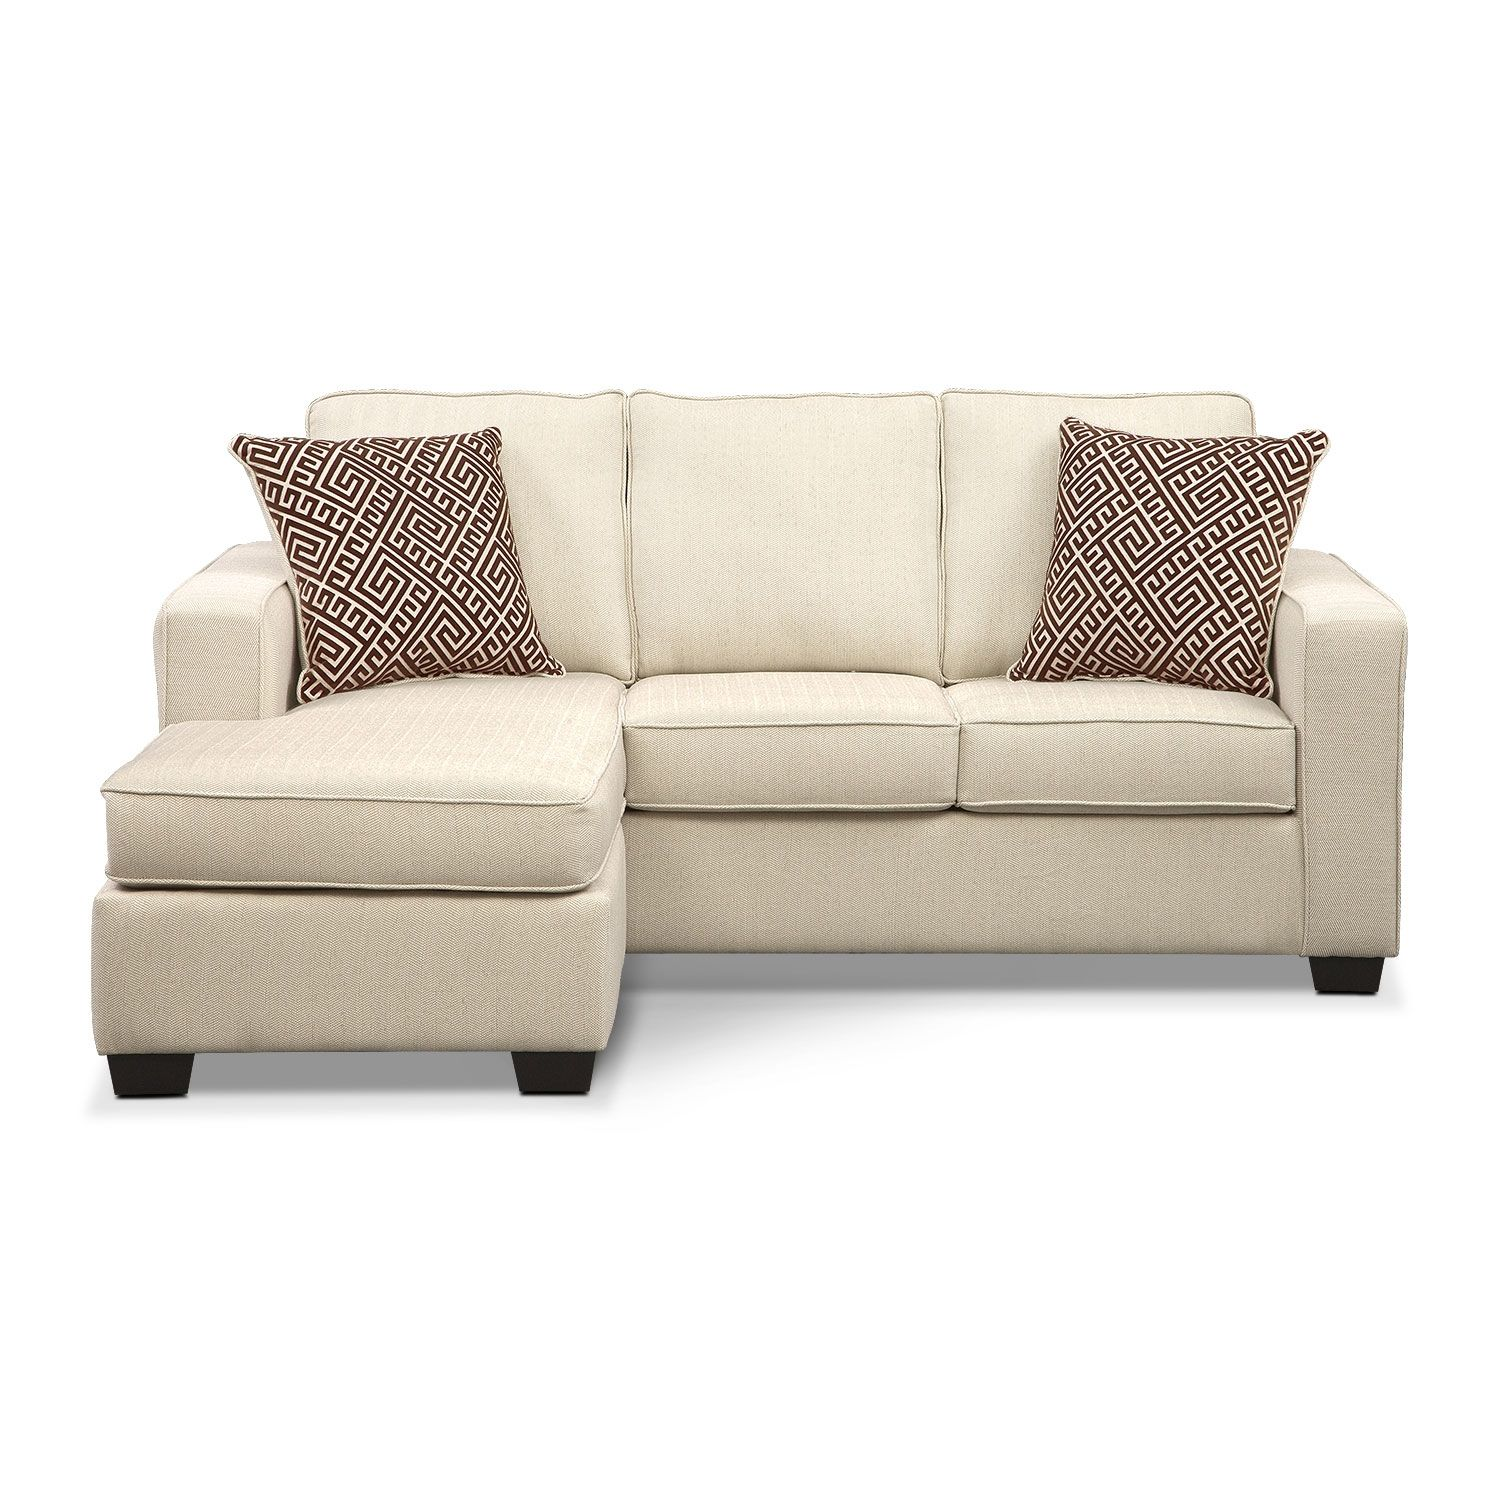 value city furniture marco chaise sofa 3 seater olx bangalore sterling beige queen memory foam sleeper w